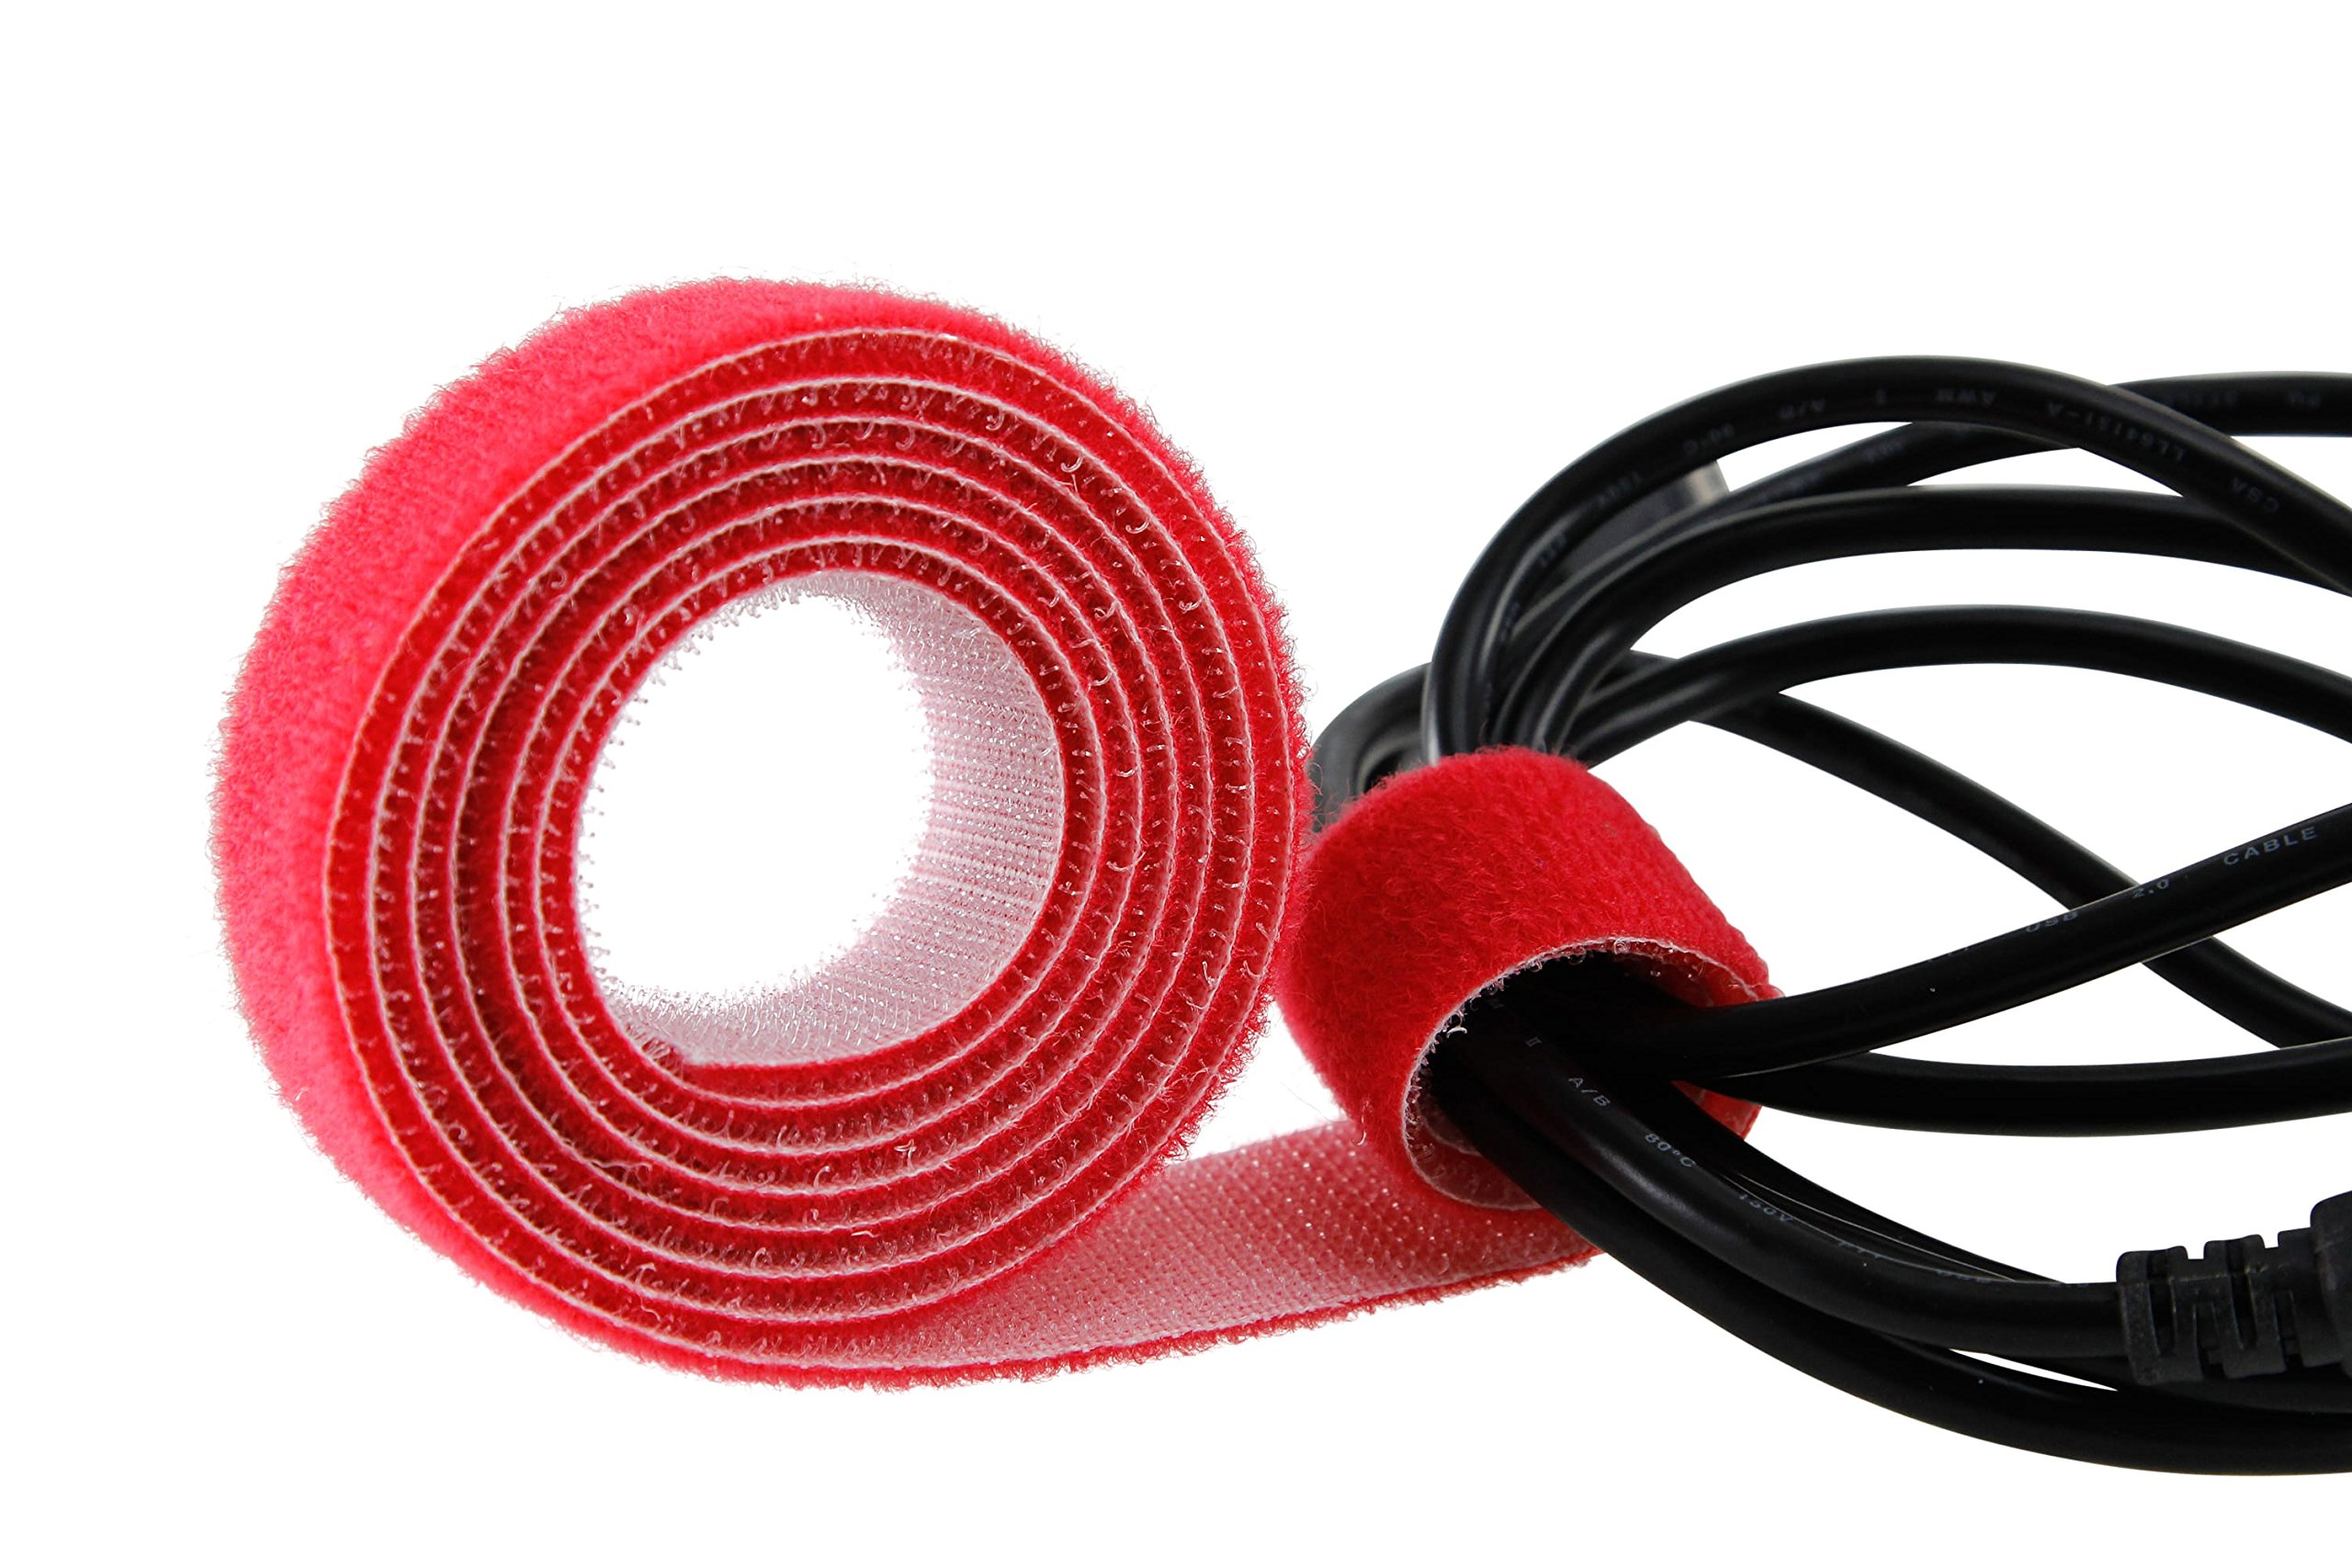 Baumgartens Nylon Cord Roll 5 Pack Assorted Colors (Pack of 5) (48005) by Baumgartens (Image #3)